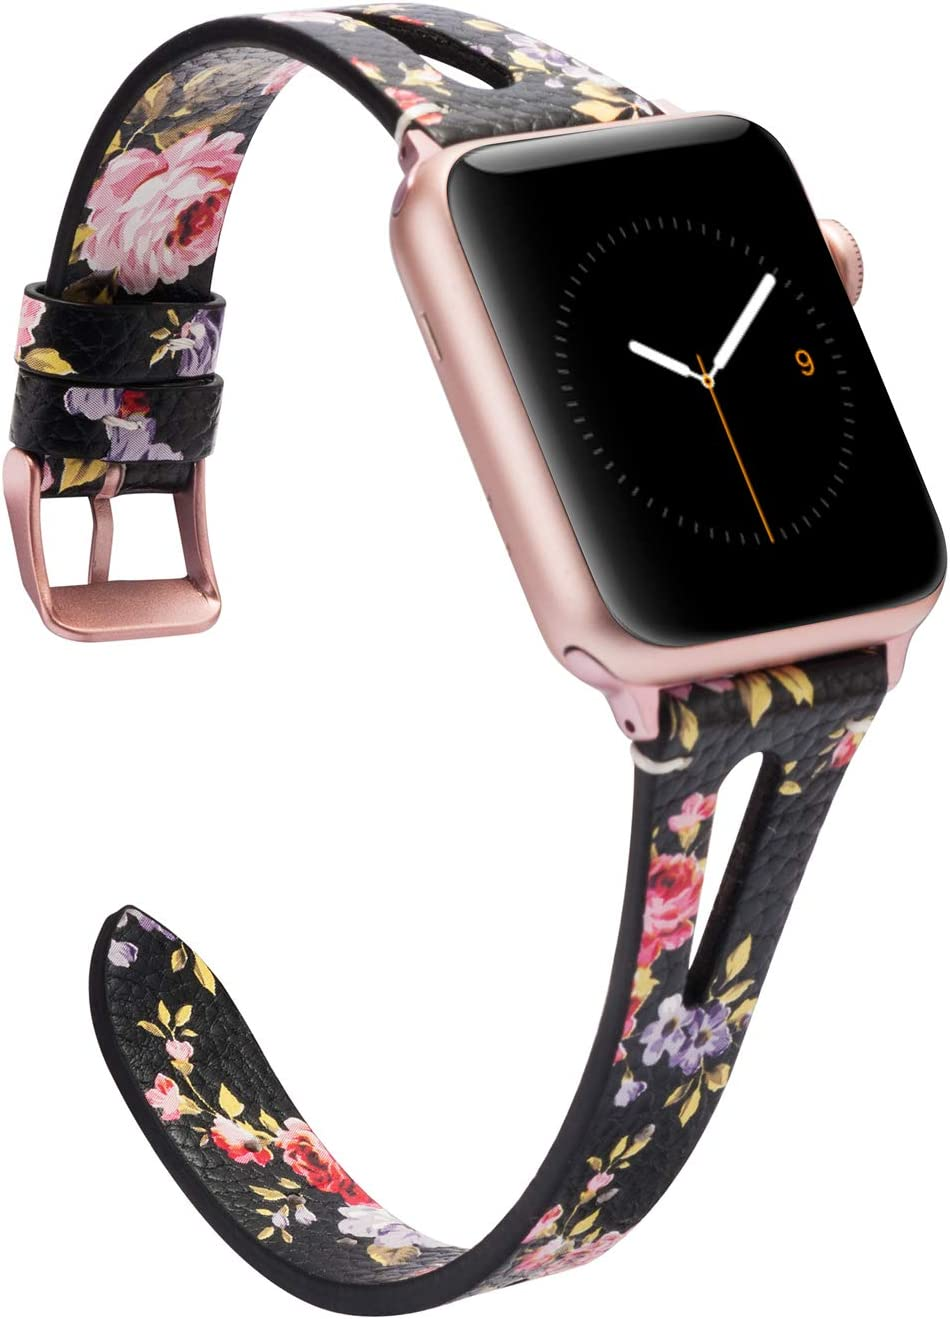 Wearlizer Leather Floral Compatible with Apple Watch Bands 42mm 44mm for iWatch SE Womens Mens Breathable Straps Wristband Cool Triangle Hole Replacement (Rose Gold Buckle) Series 6 5 4 3 2 1